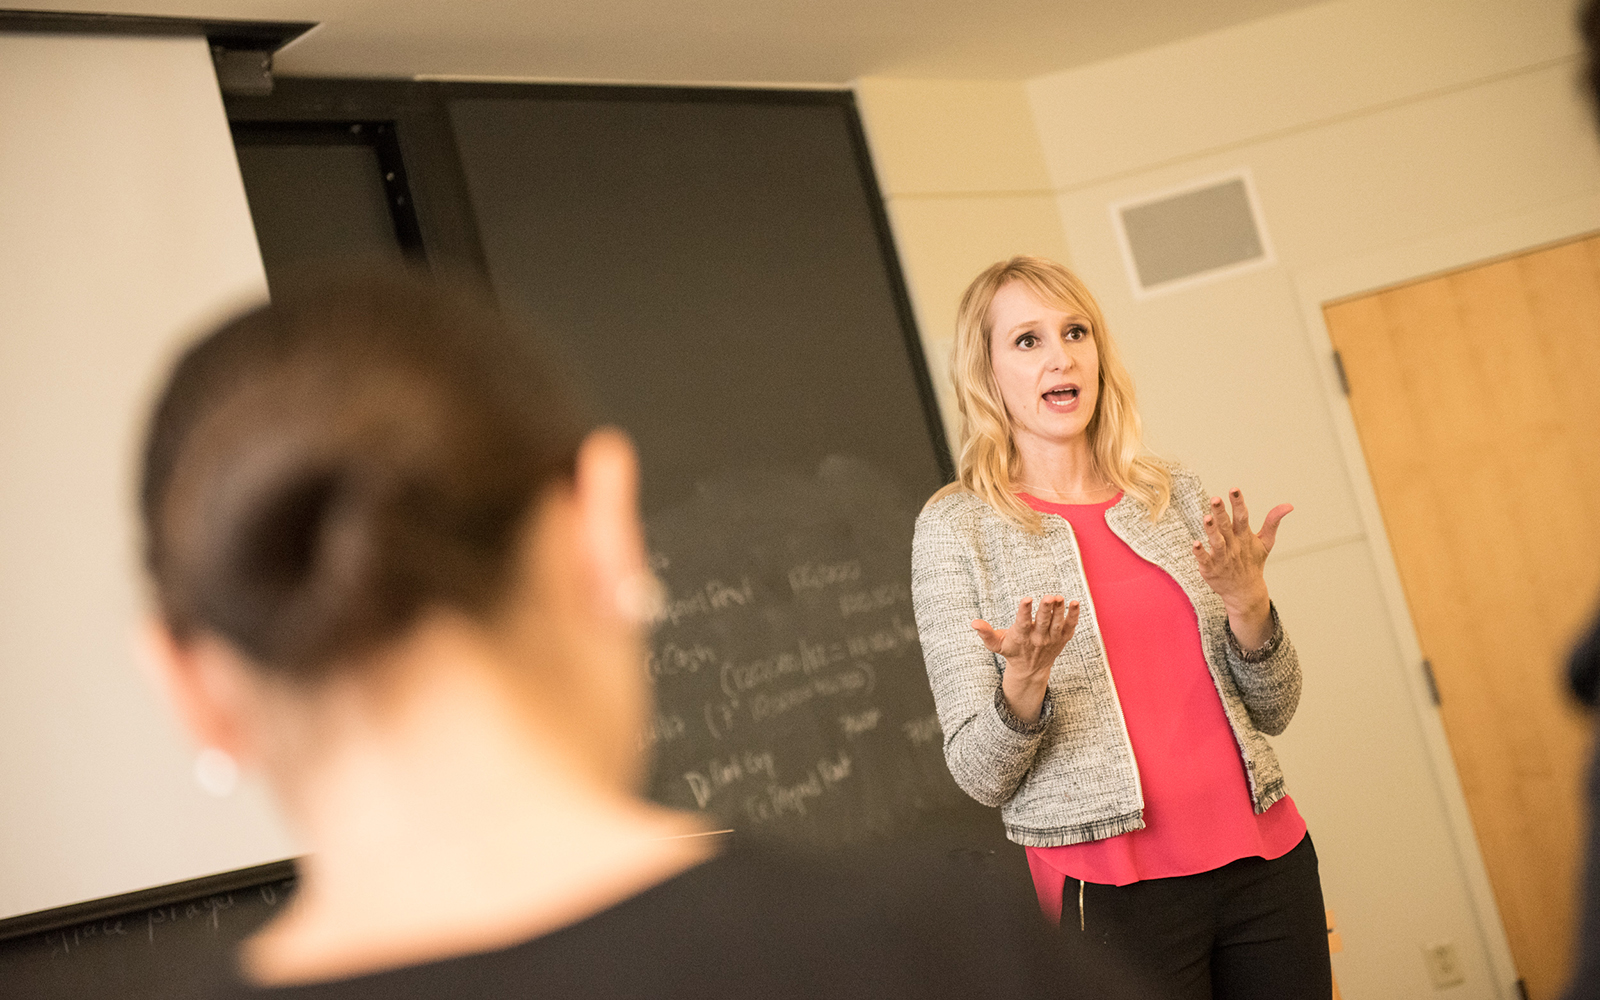 Pictured above, Professor Anna Bergman Brown teaches students at the University of Connecticut.